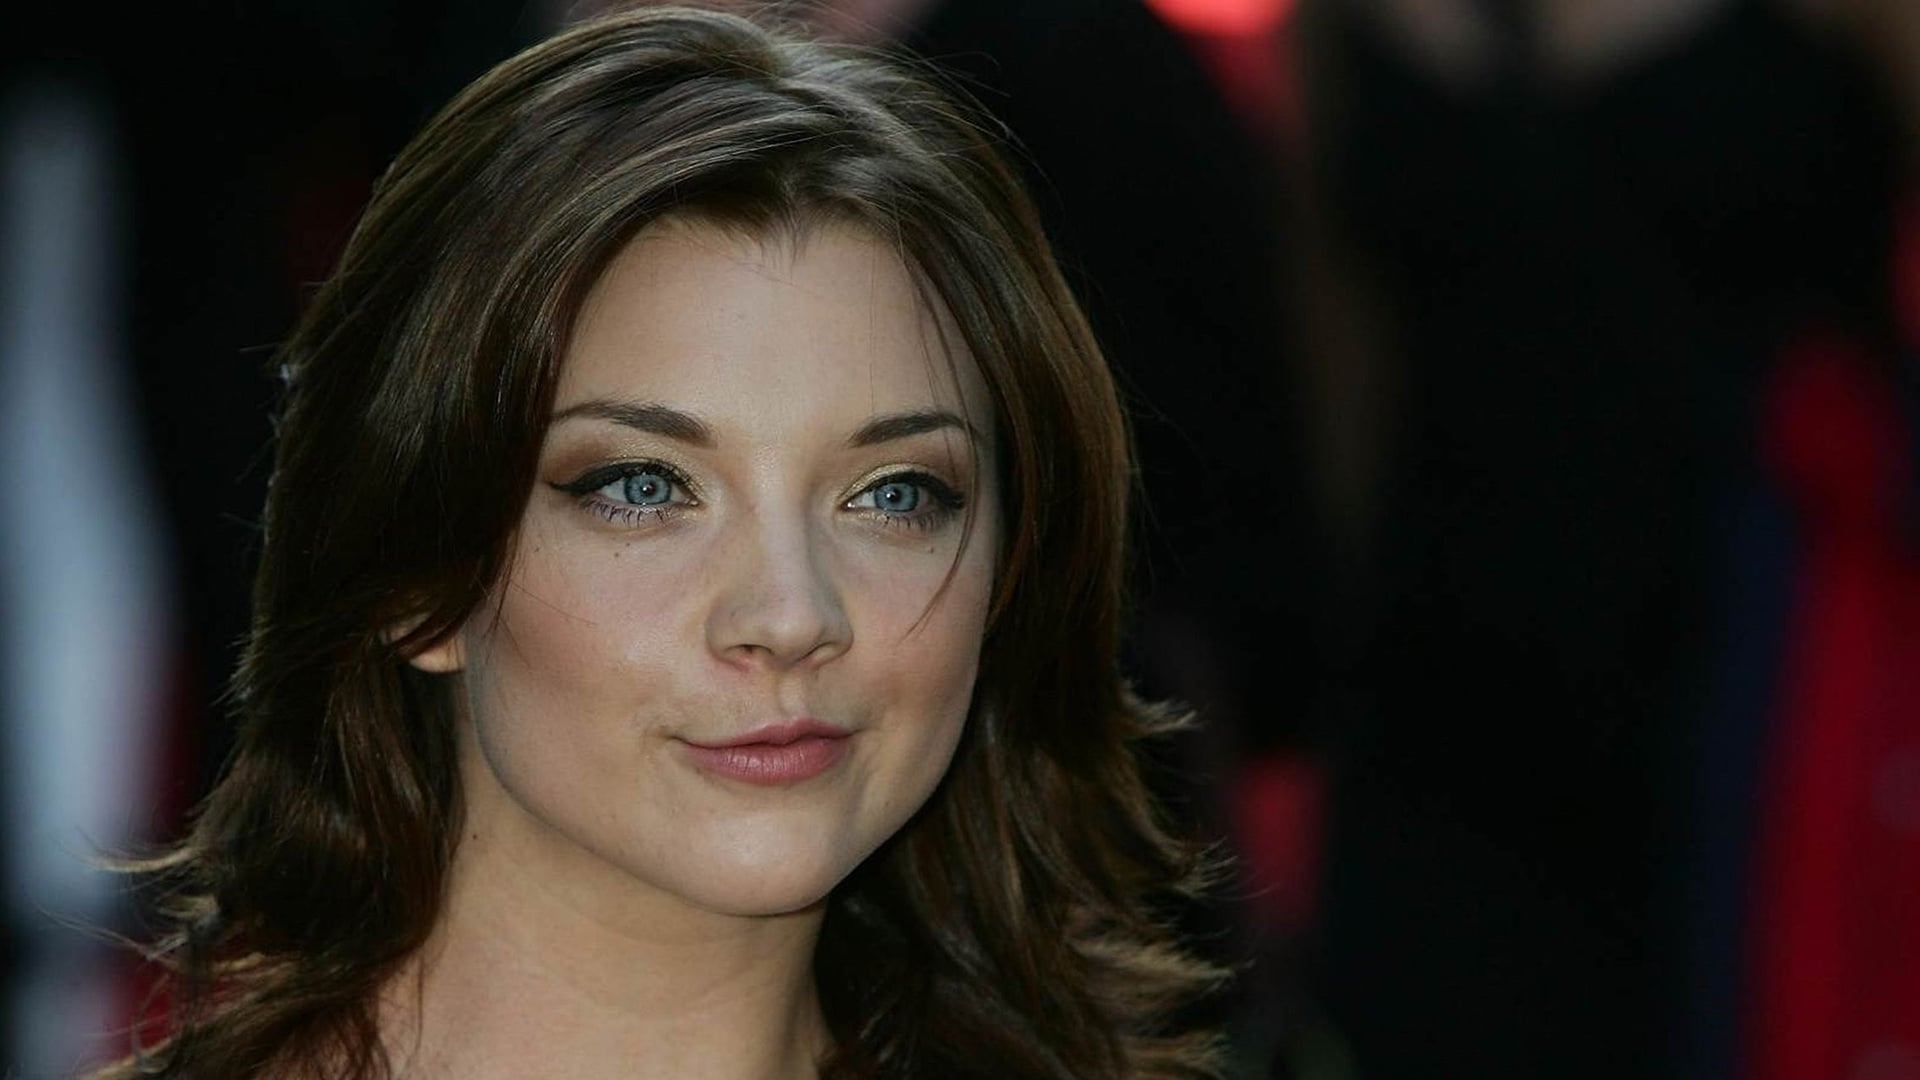 Awesome Cool Car Wallpapers Natalie Dormer Wallpapers High Quality